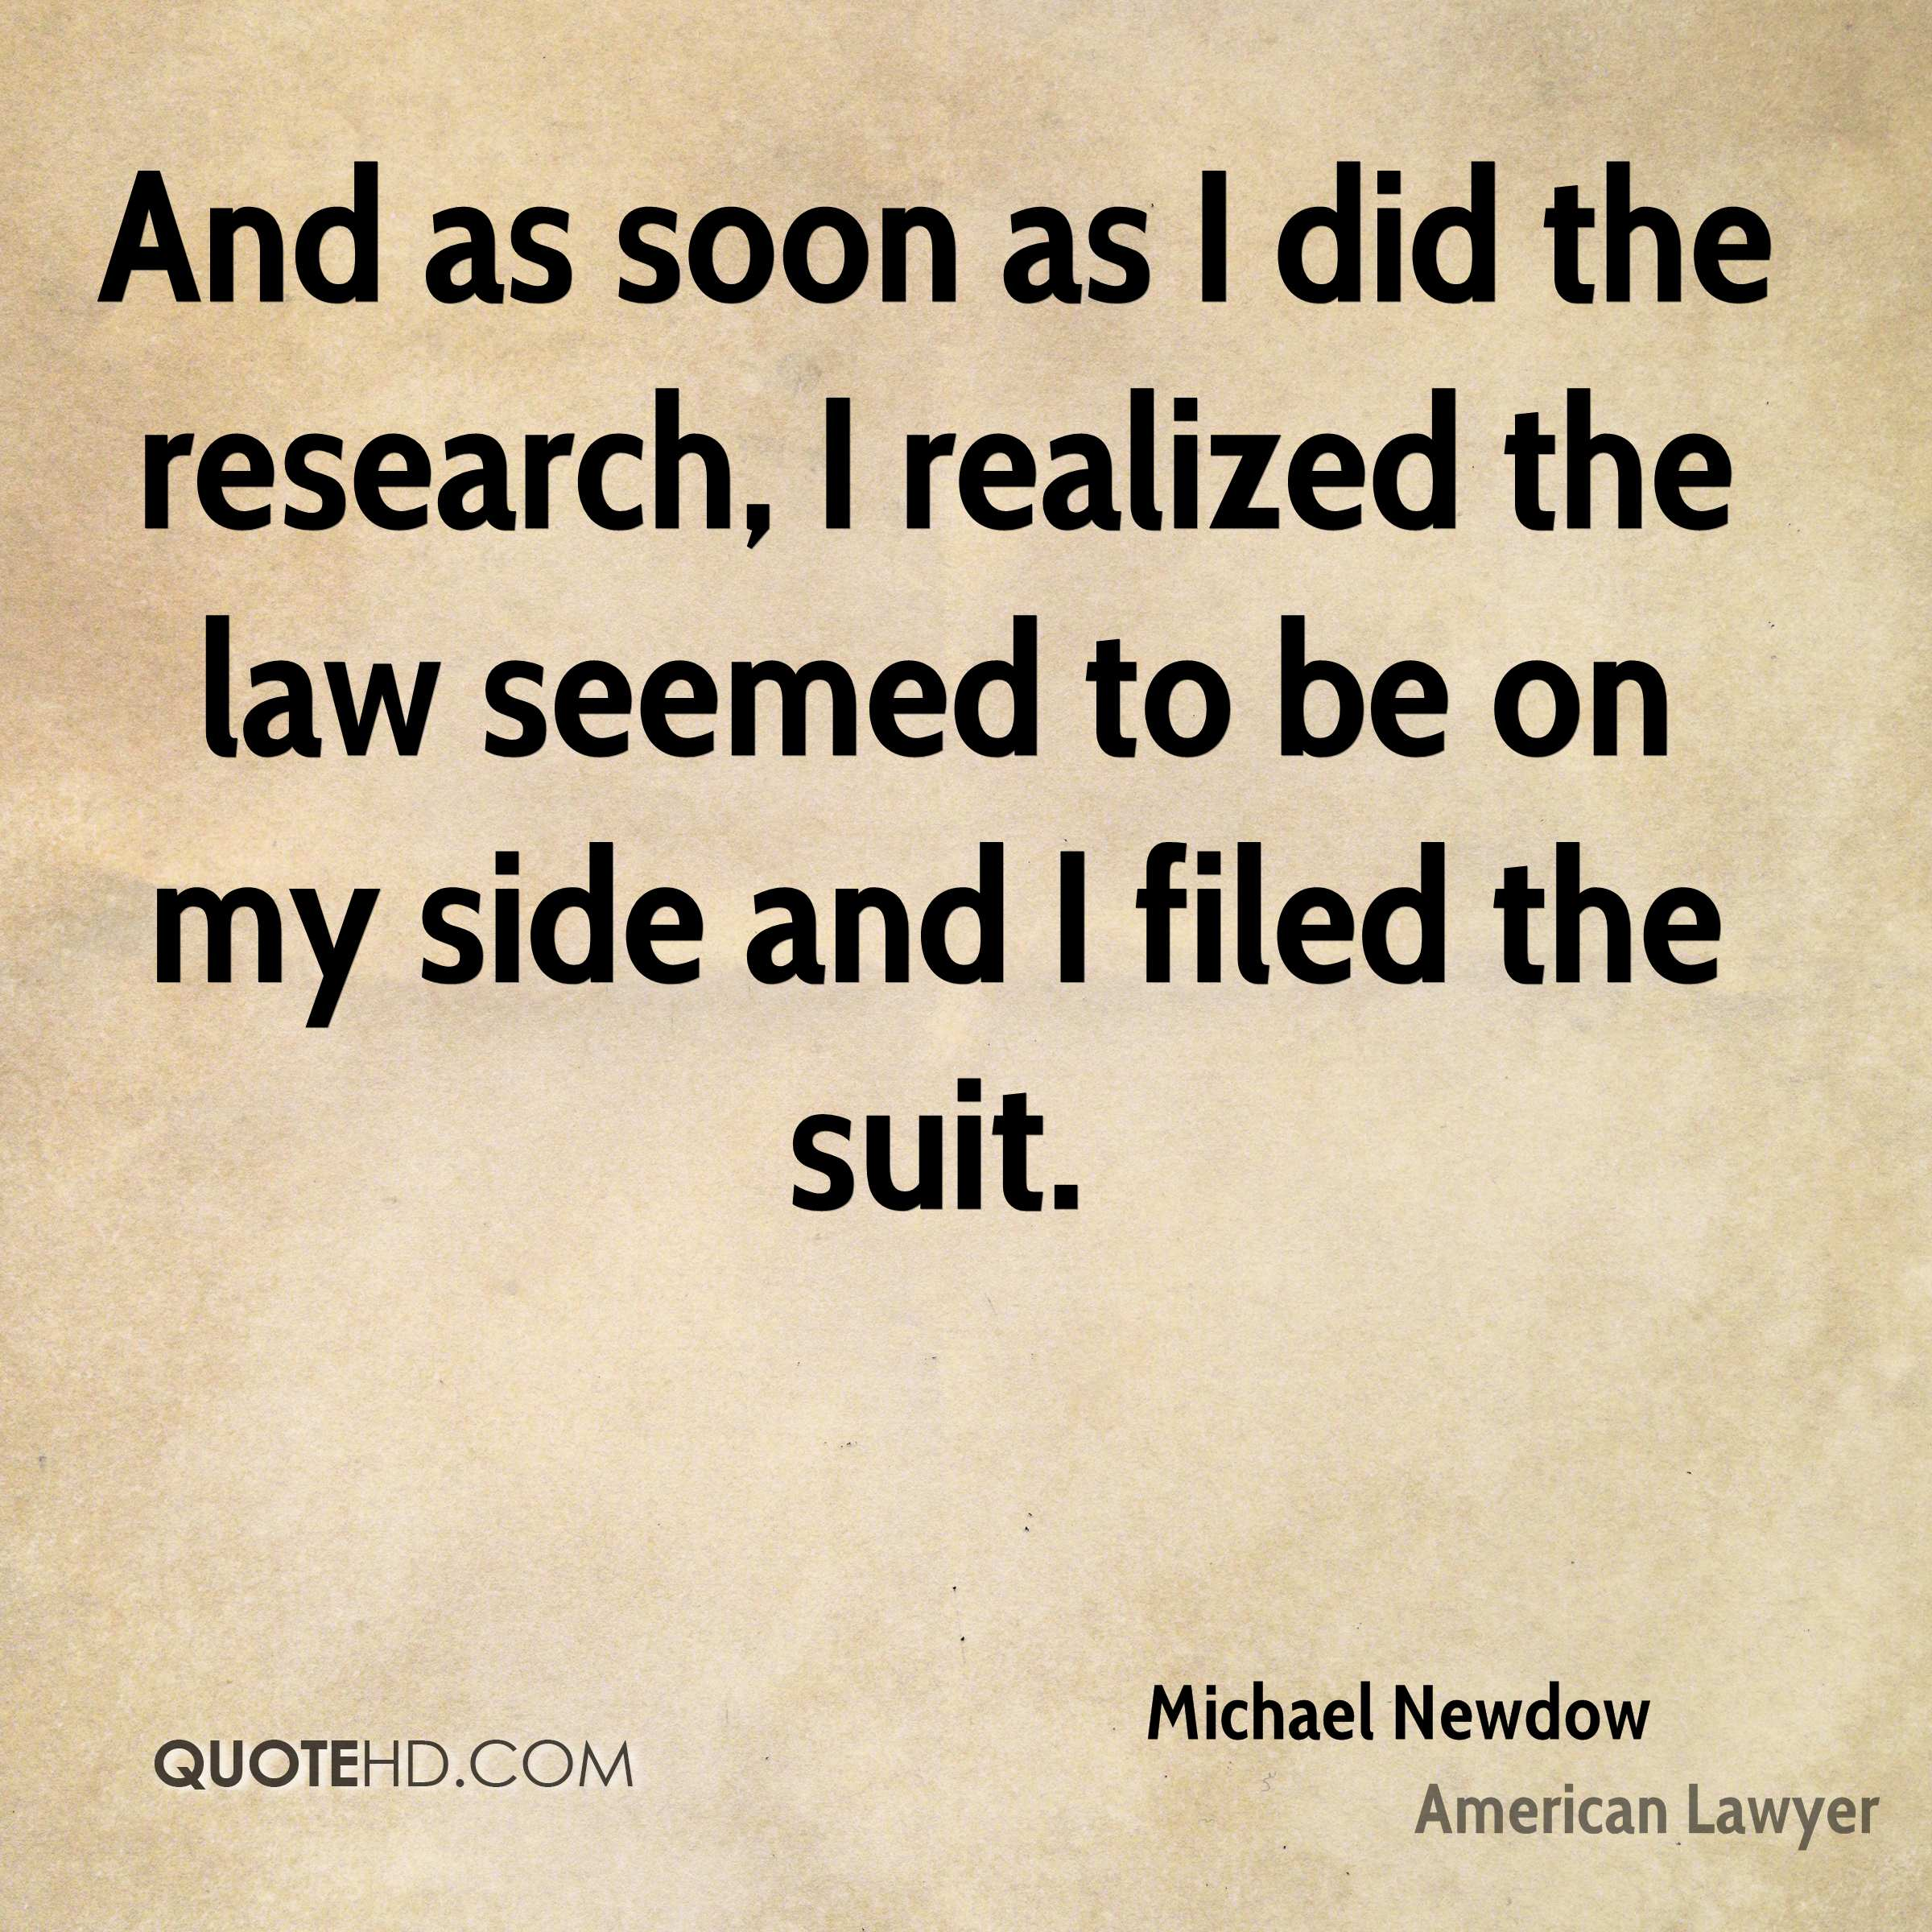 And as soon as I did the research, I realized the law seemed to be on my side and I filed the suit.